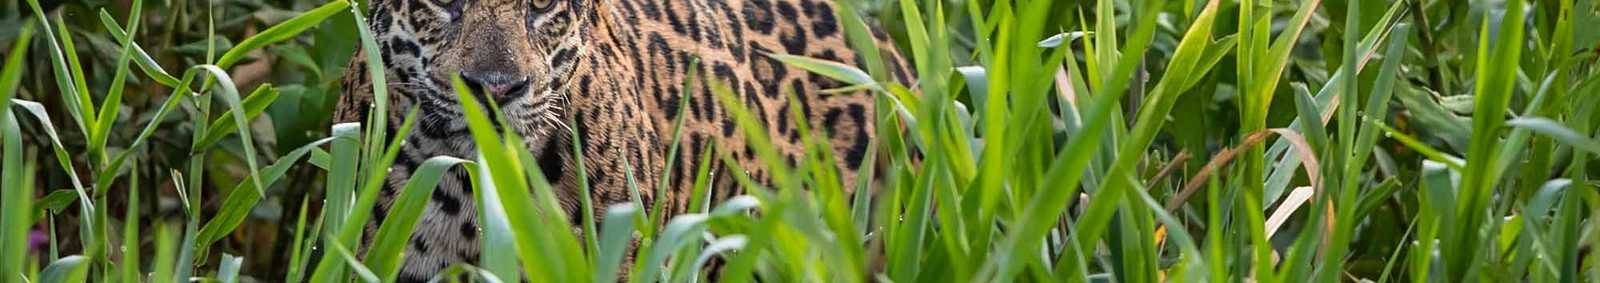 Jaguar in the Pantanal, Brazil (Image by Paul Goldstein)